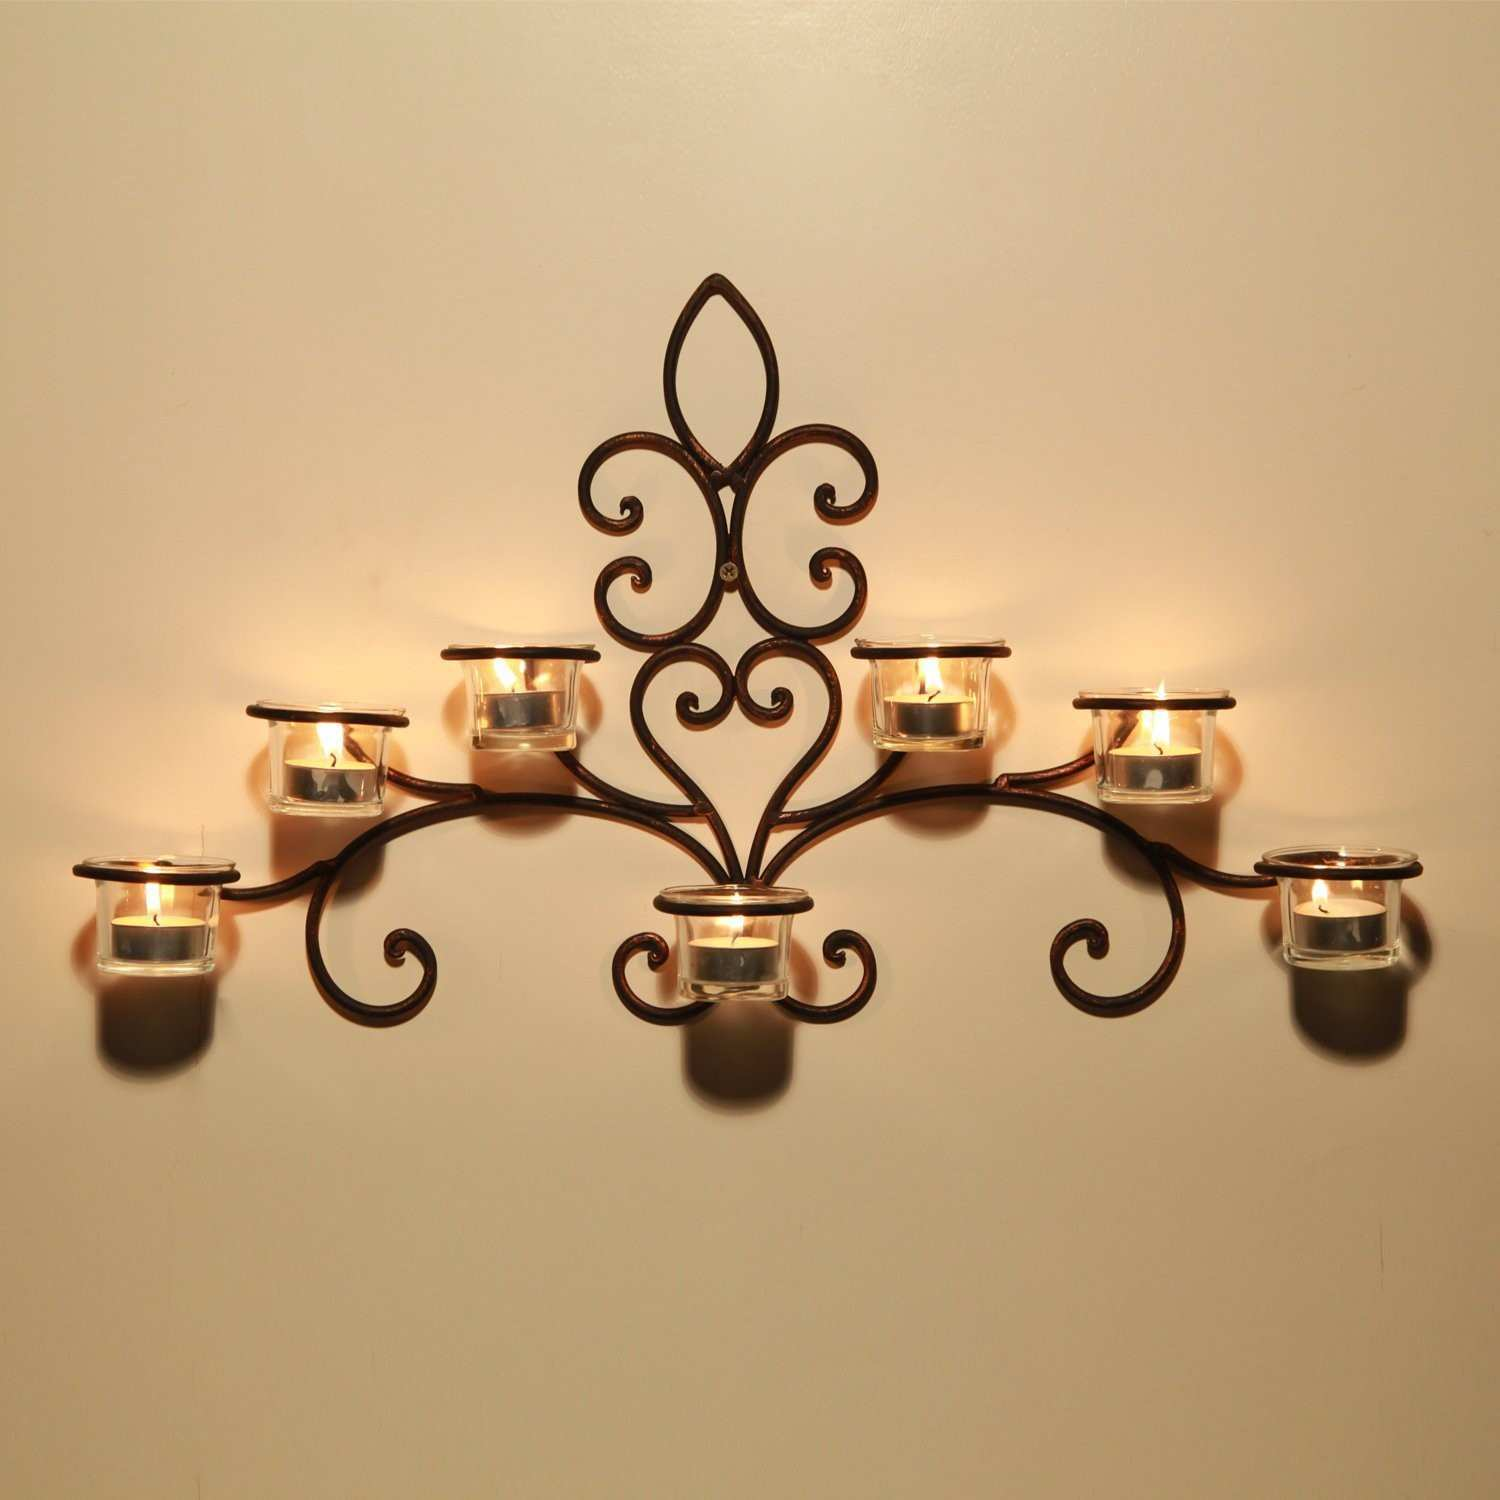 Fascinating 80 Wall Hanging Candle Holders Decorating Design 25